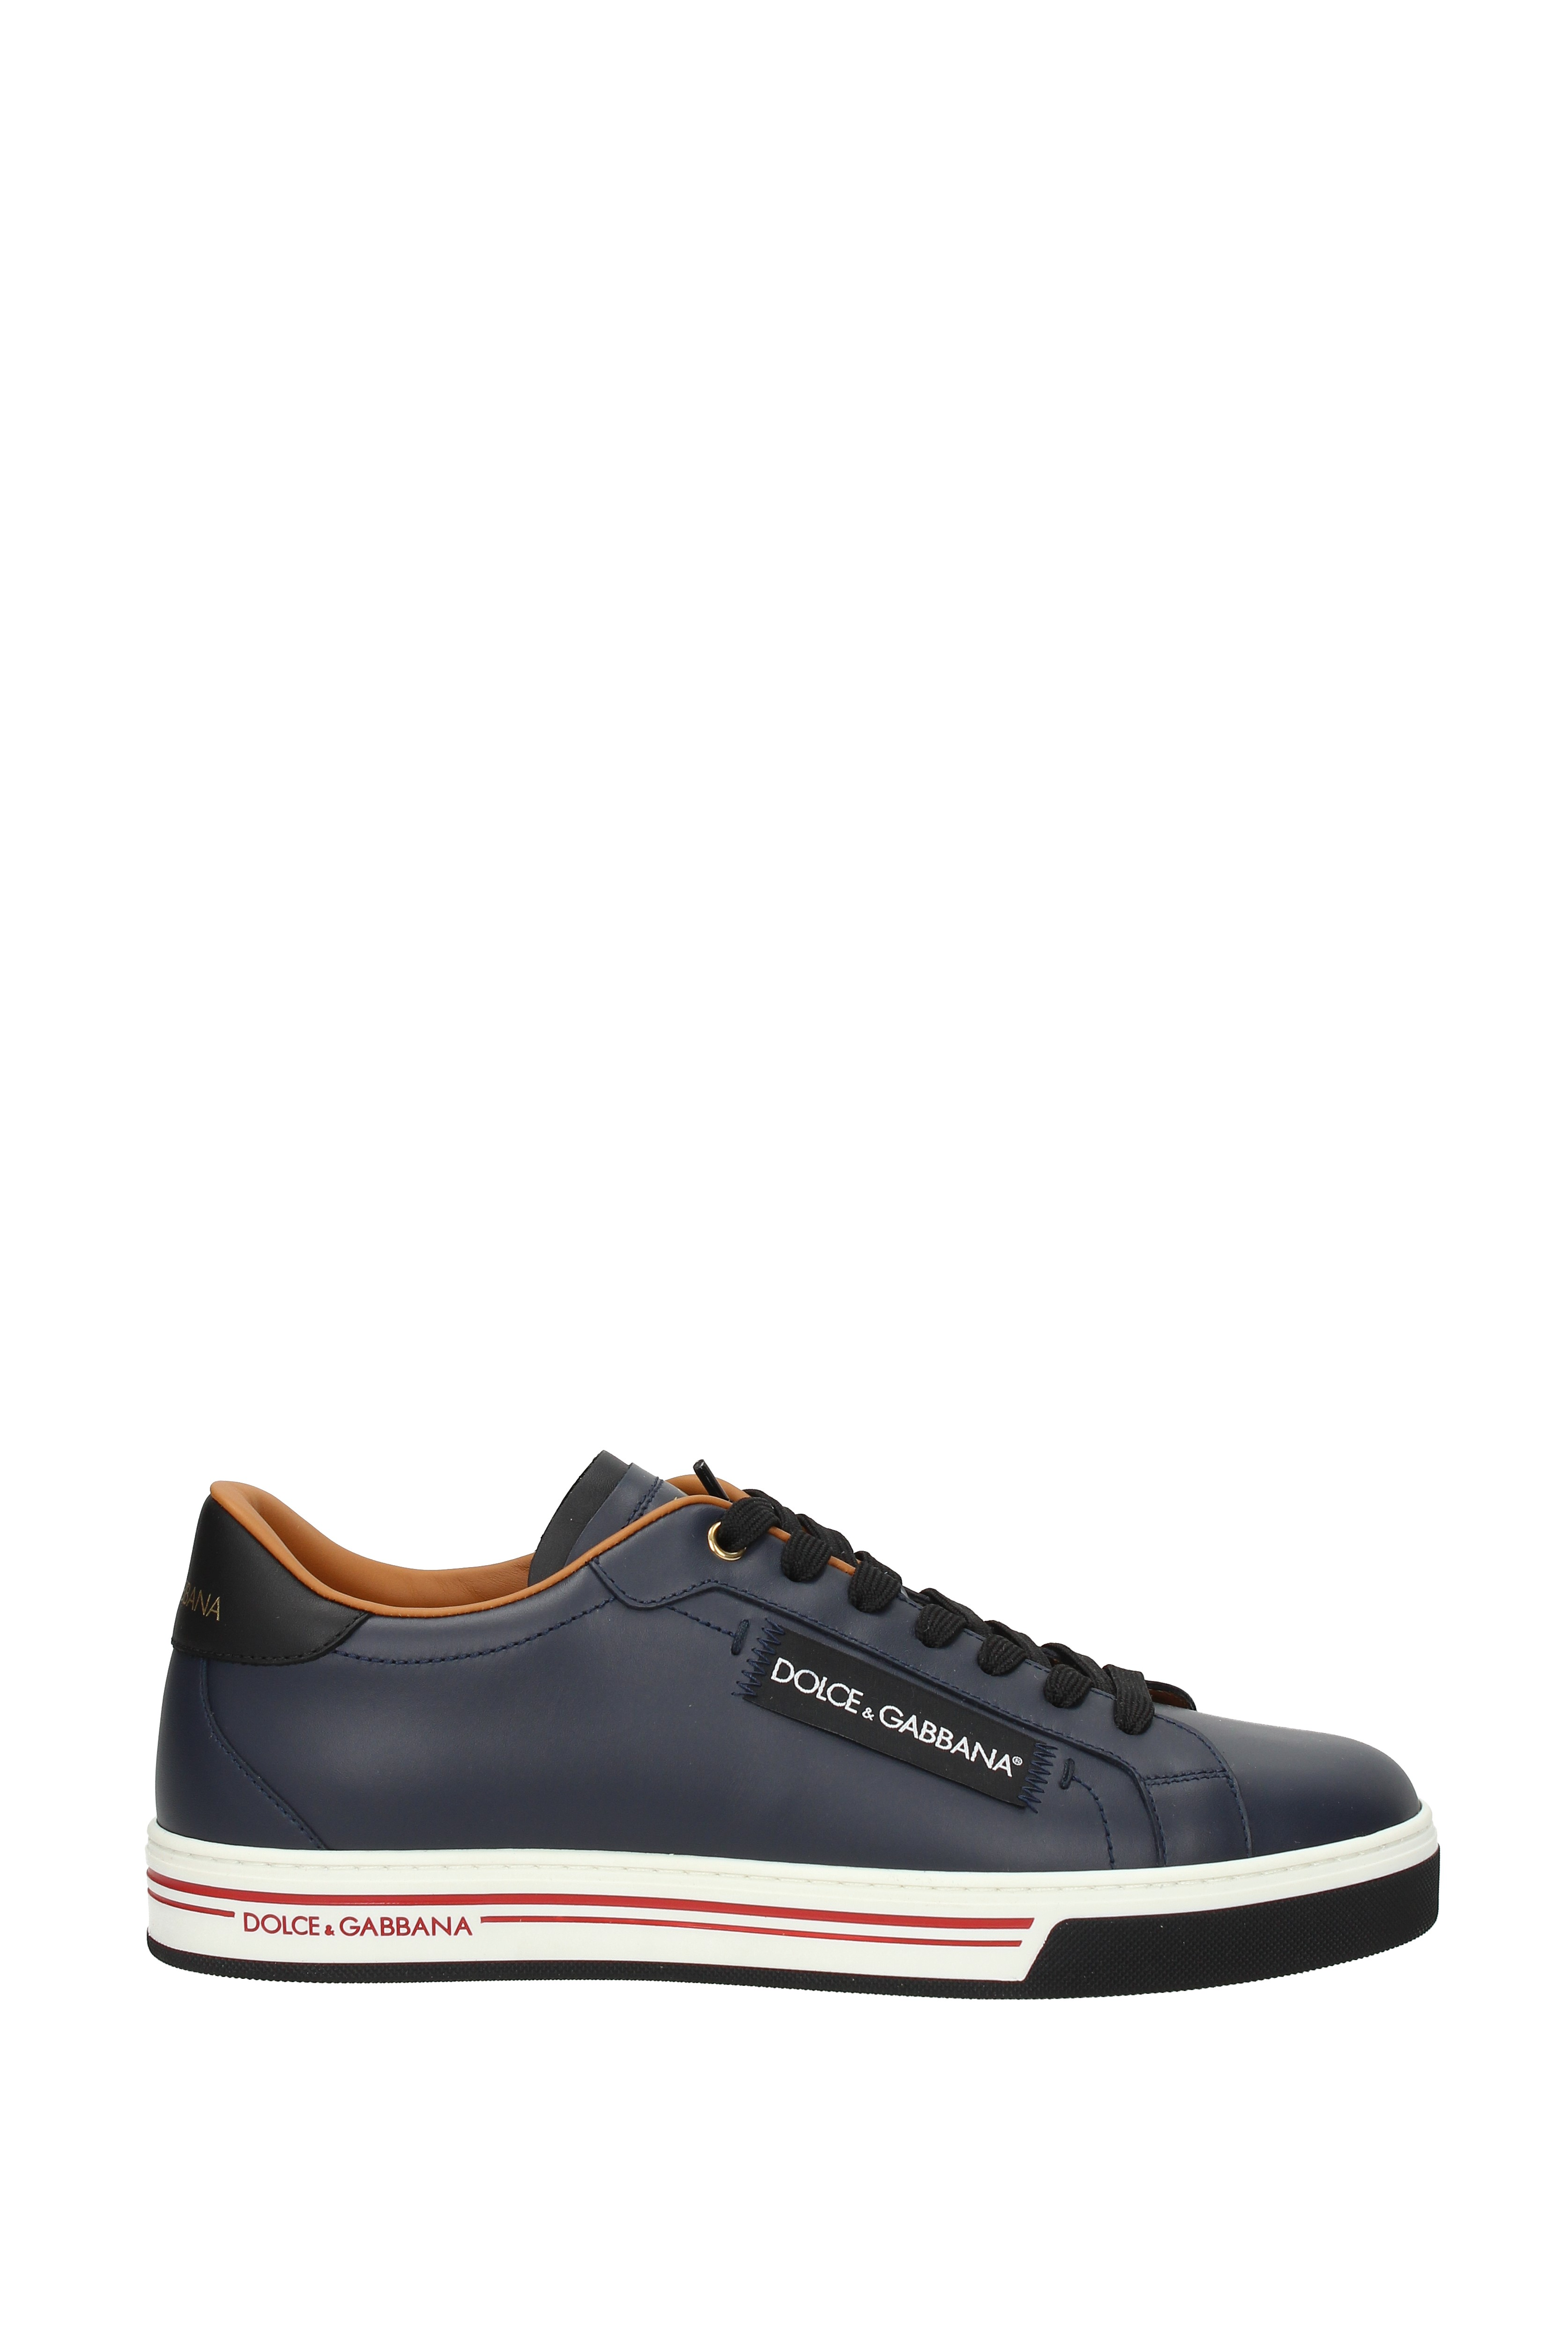 Sneakers Dolce&Gabbana rustic Men - Leather (CS1572AN175) (CS1572AN175) Leather 852b7a